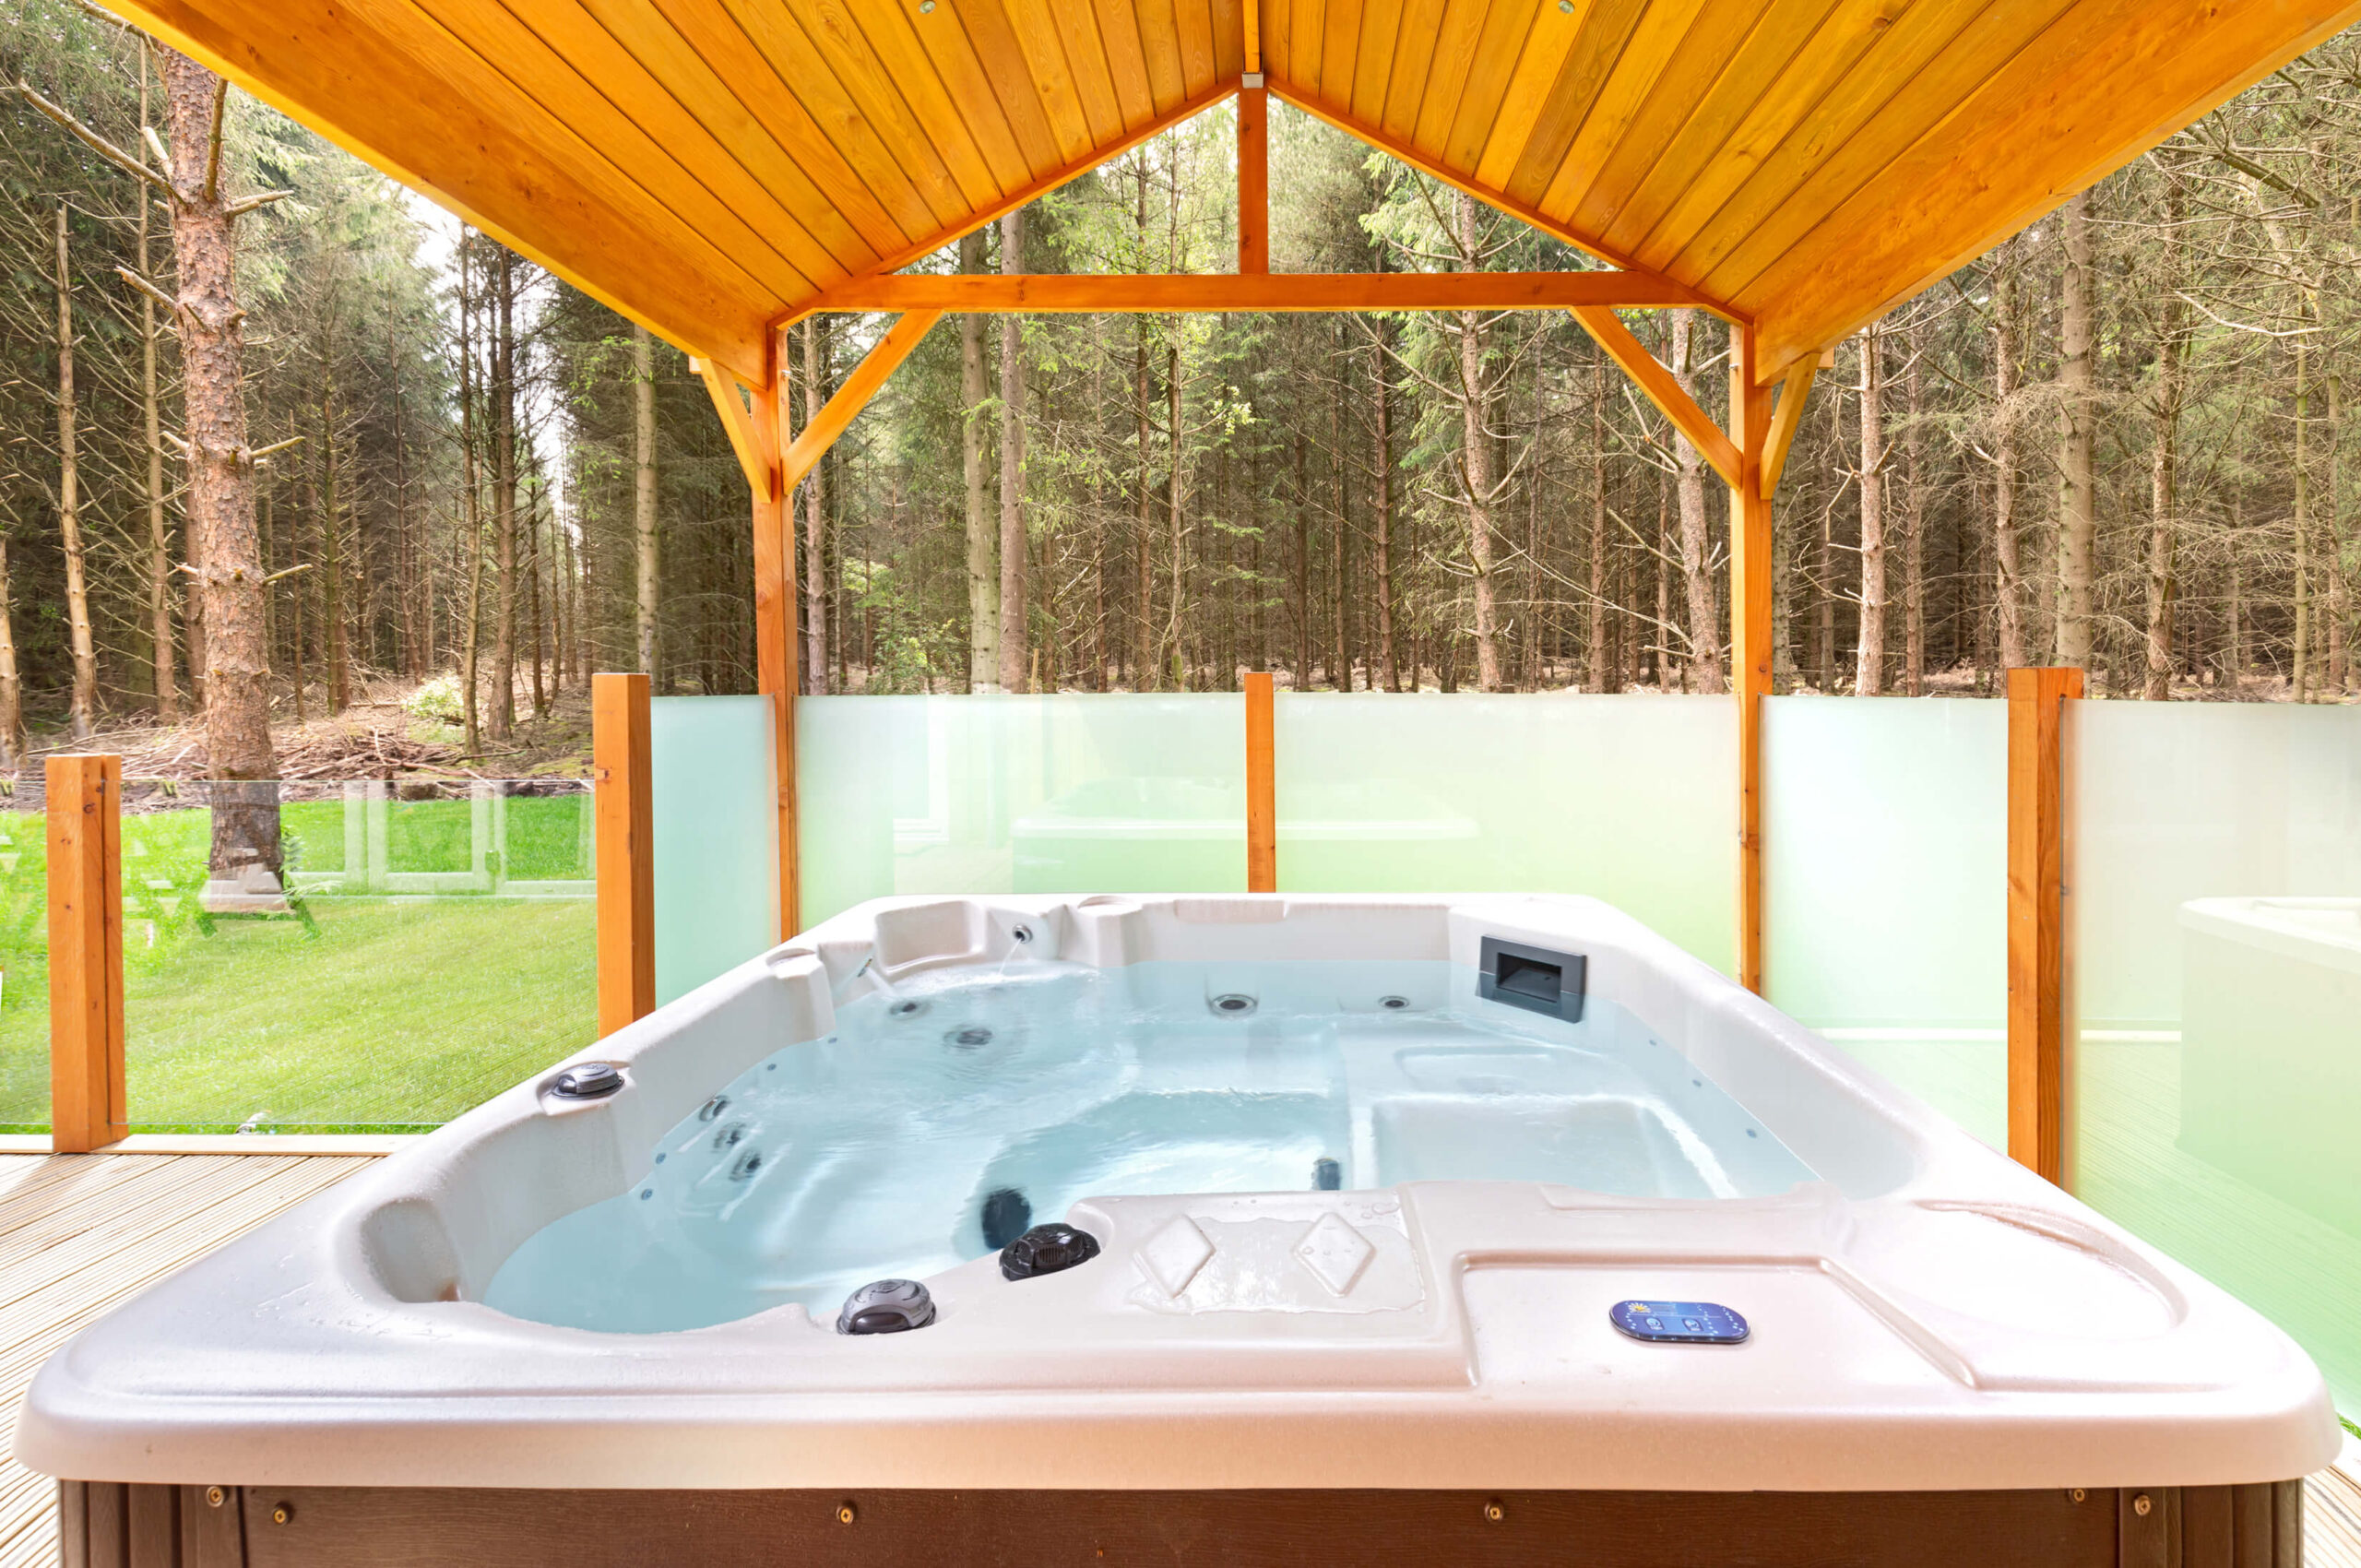 An outdoor jacuzzi on the deck of a Pinelog lodge